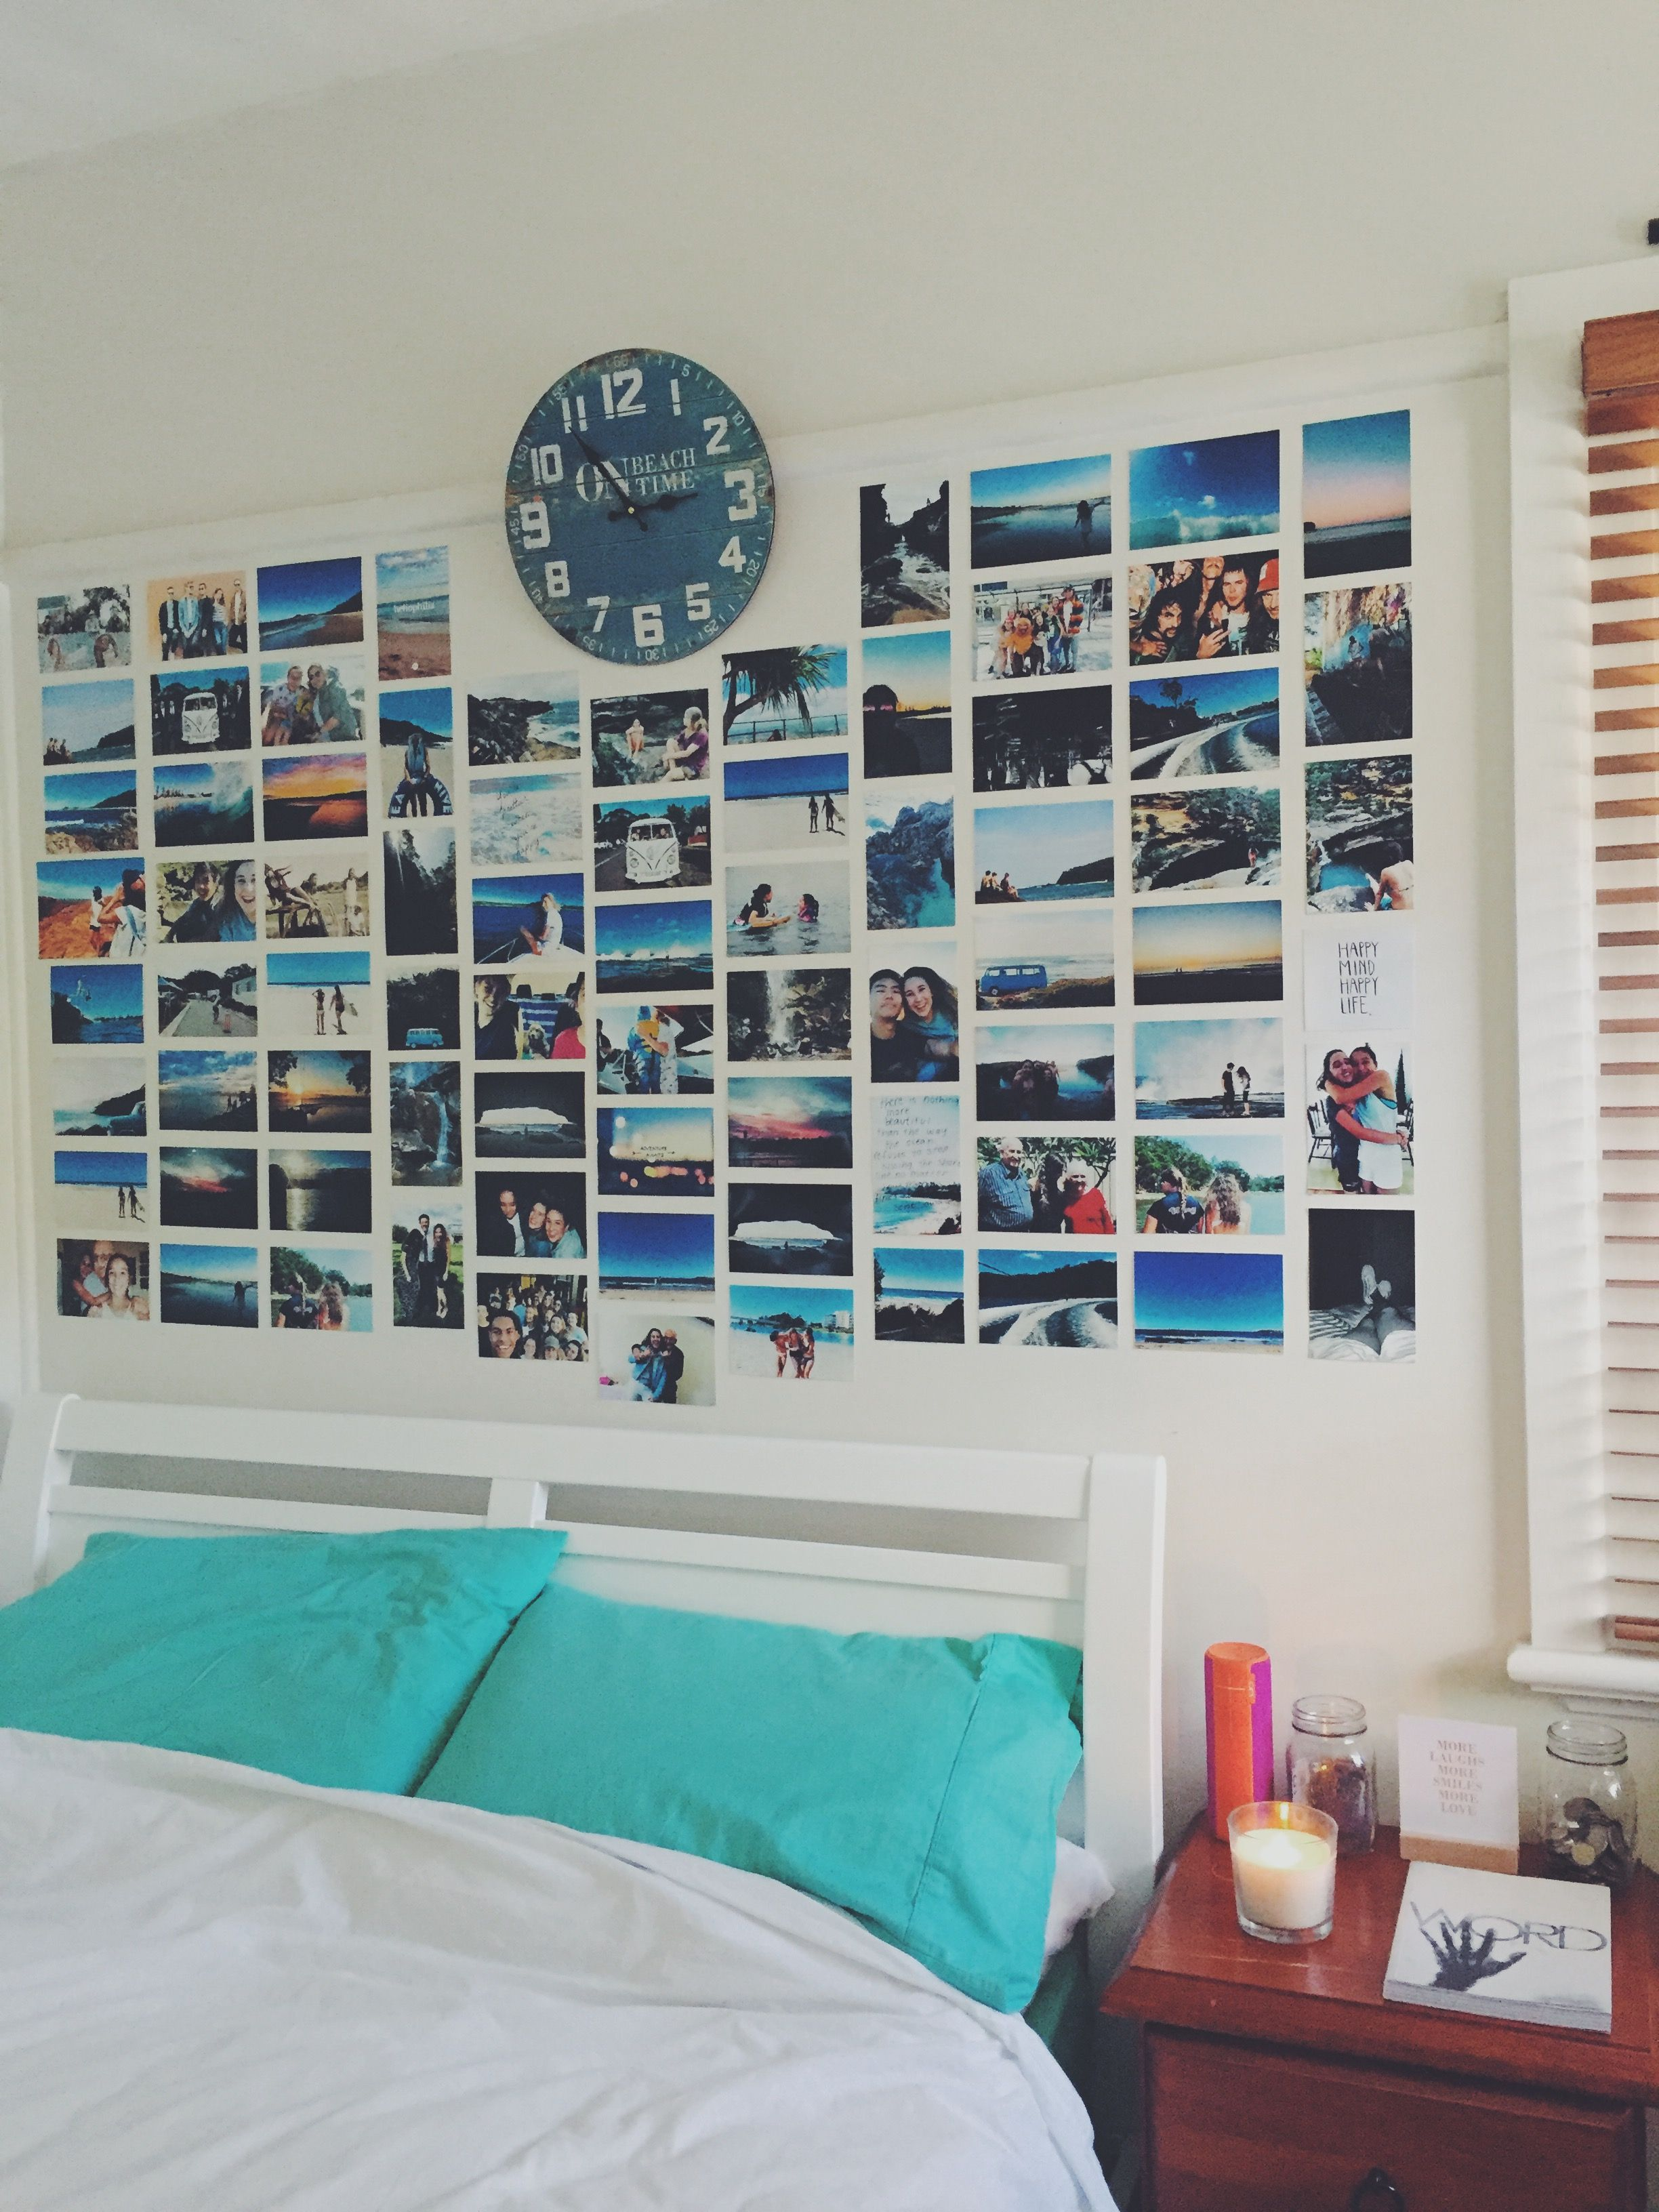 Pin By Lacie Fisher On Home Decor 1 Surf Room Dorm Room Decor